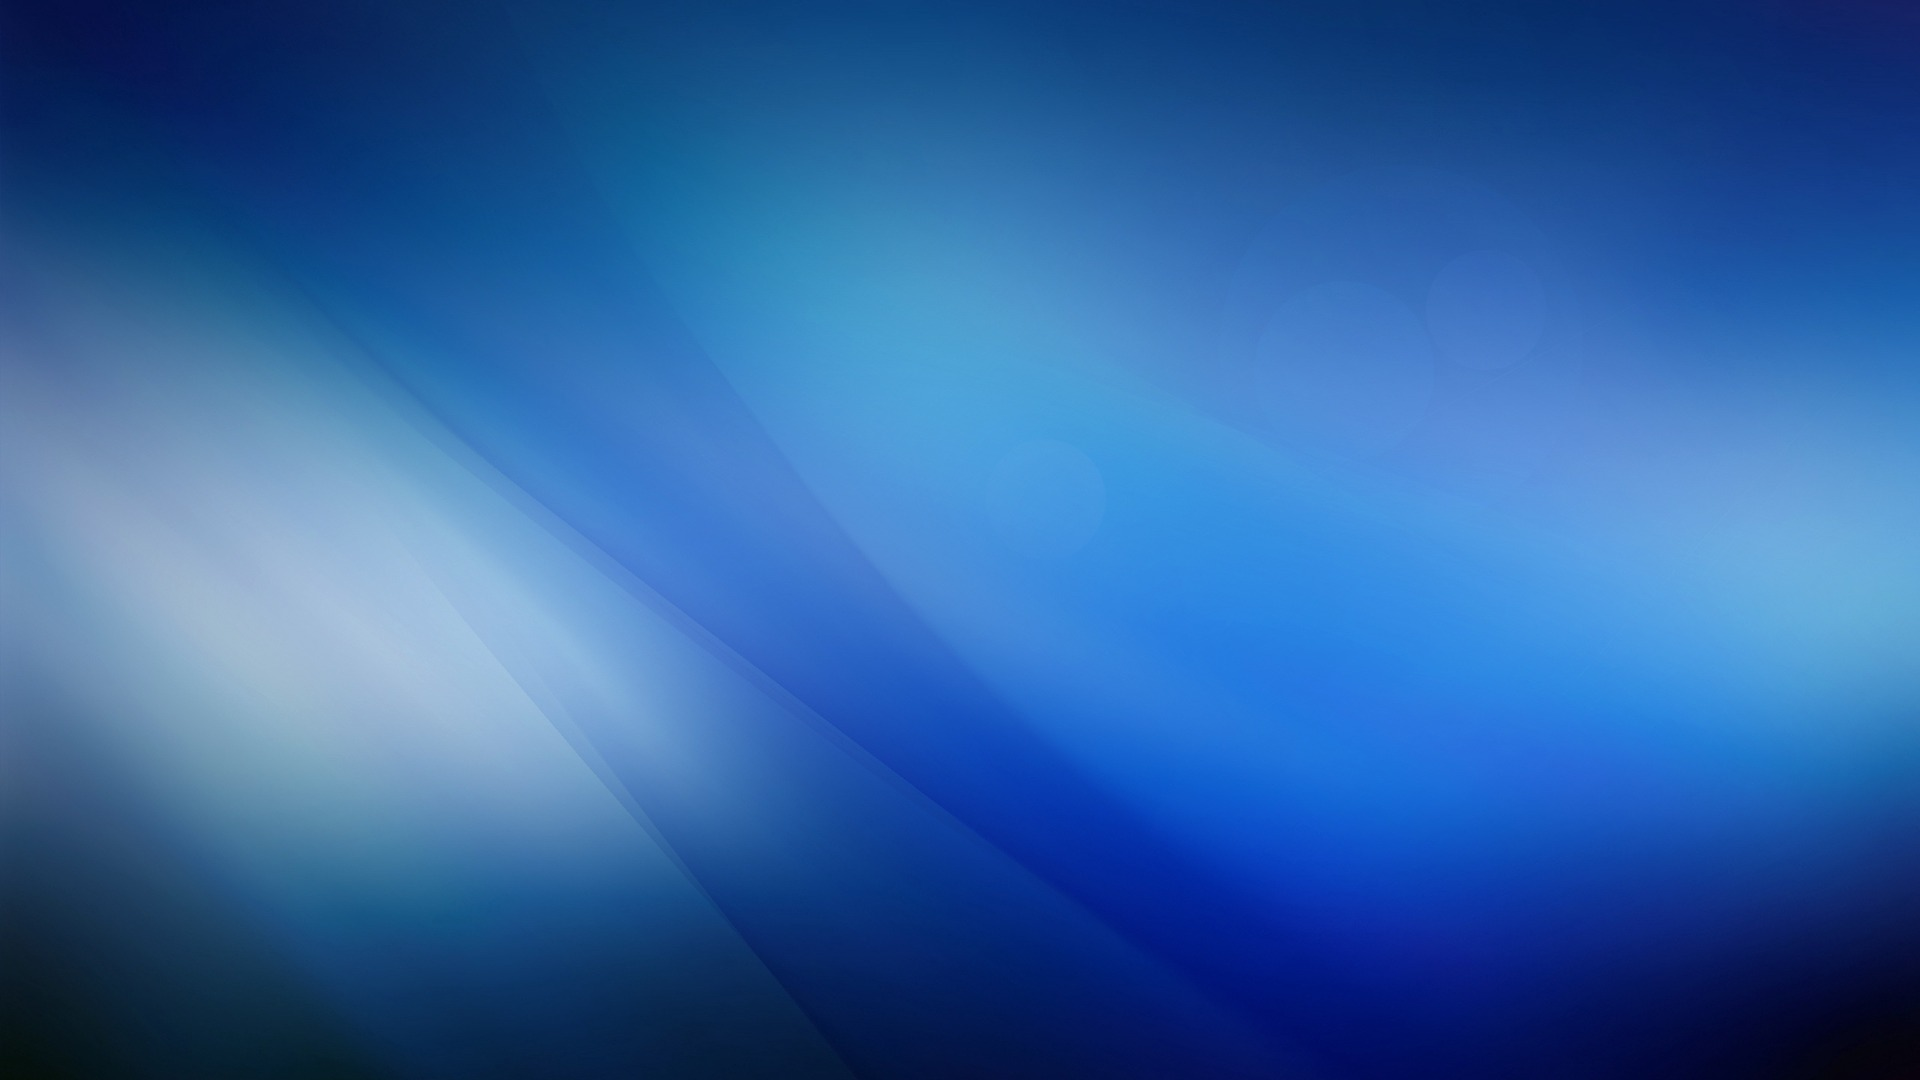 Download wallpaper 1920x1080 blue background wave abstract full 1920x1080